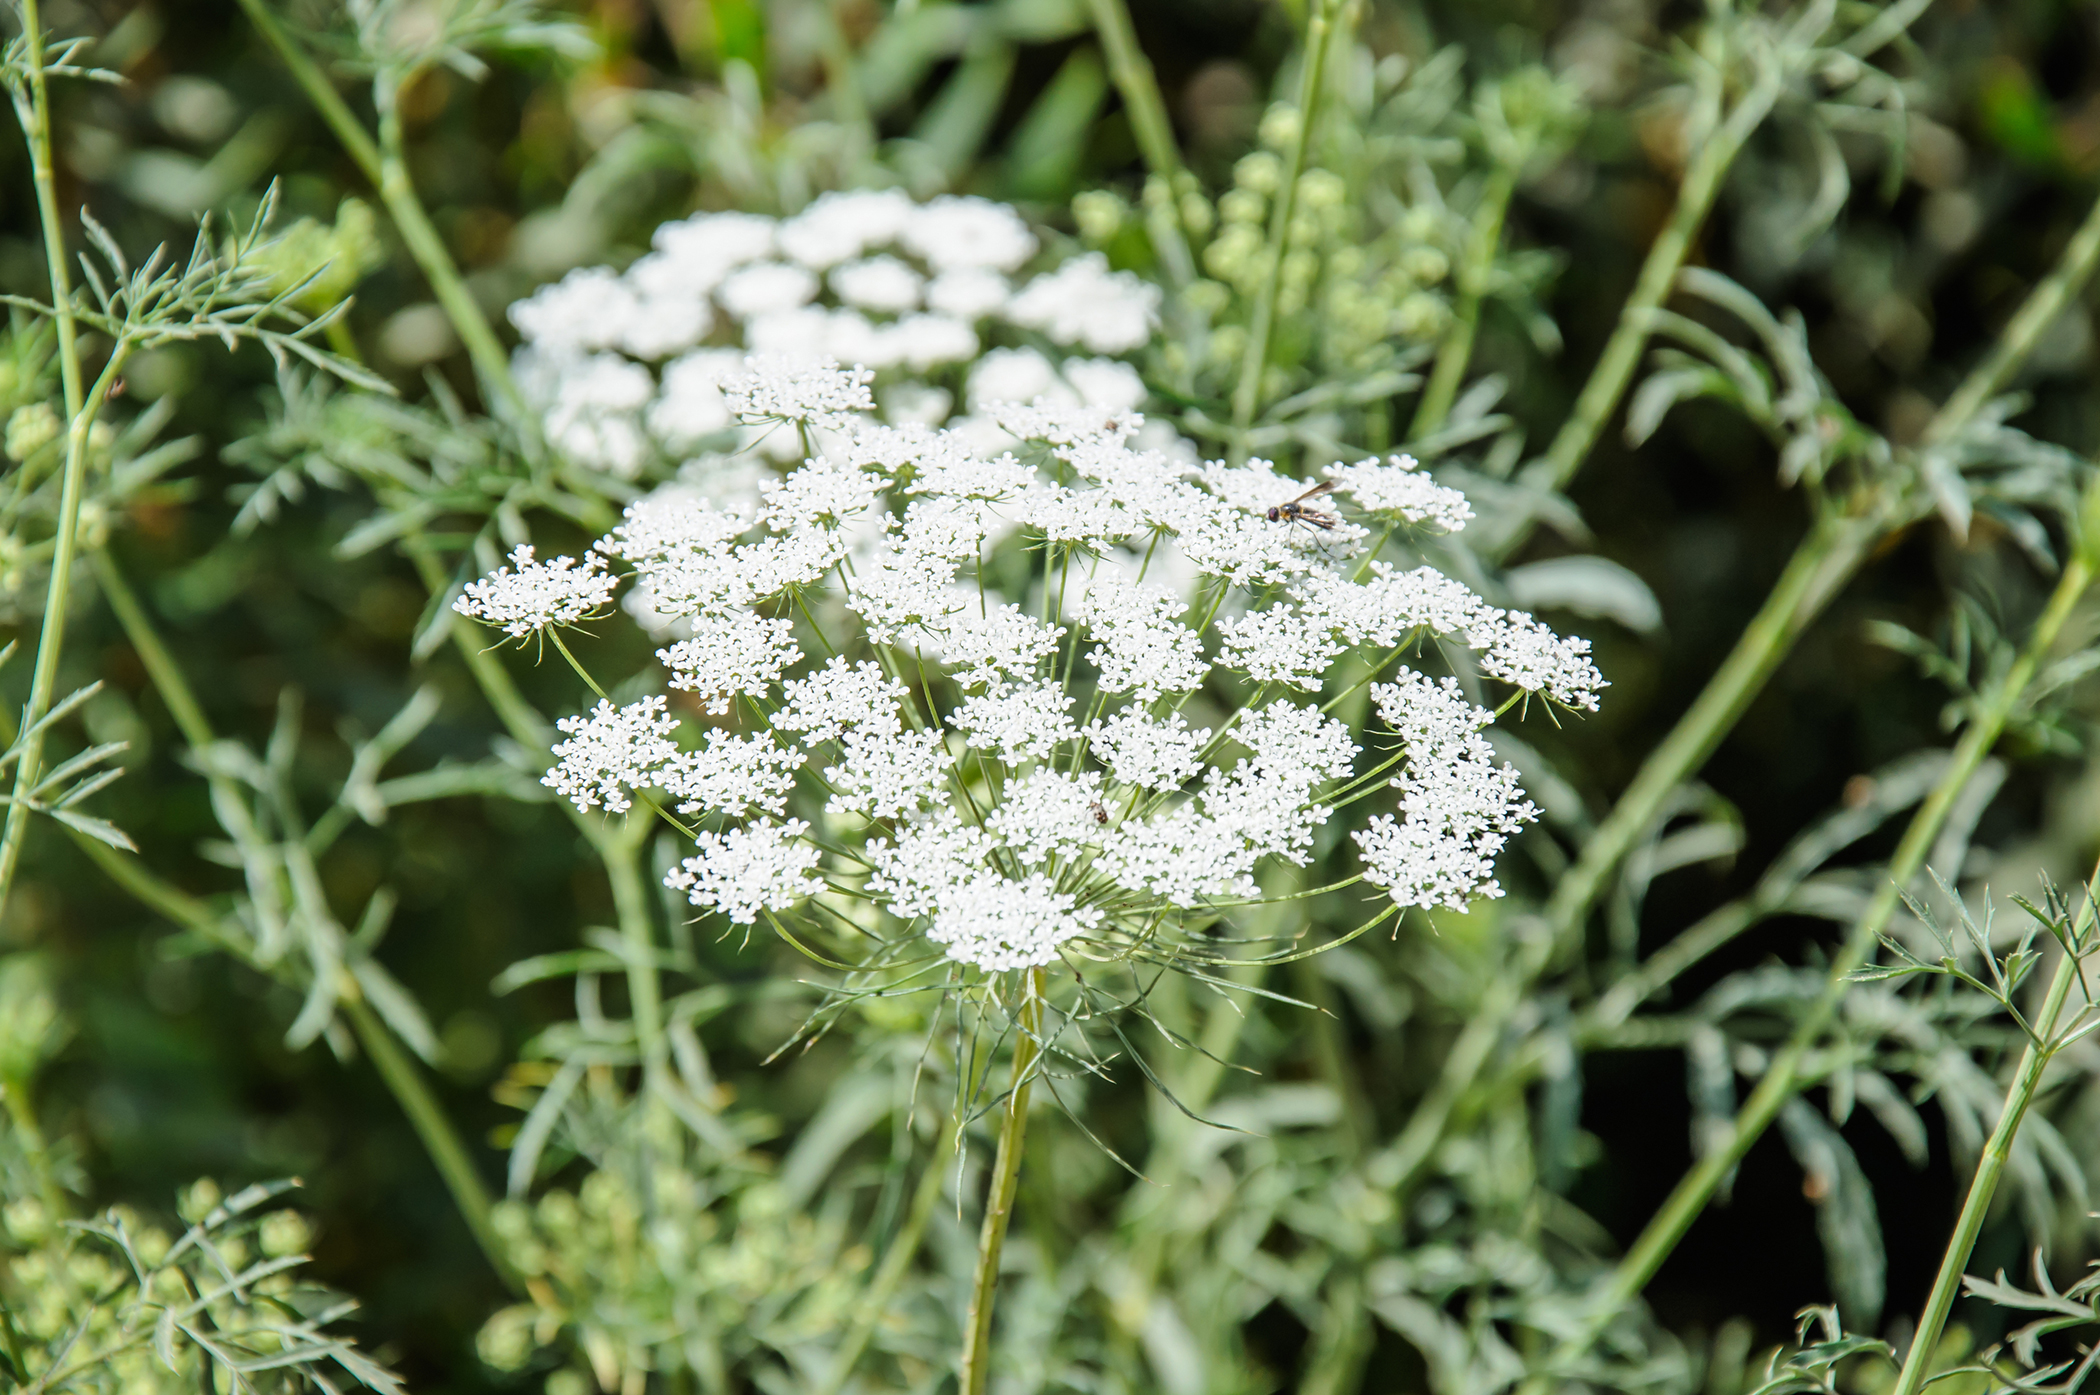 Wild Carrot Poisoning in Cats